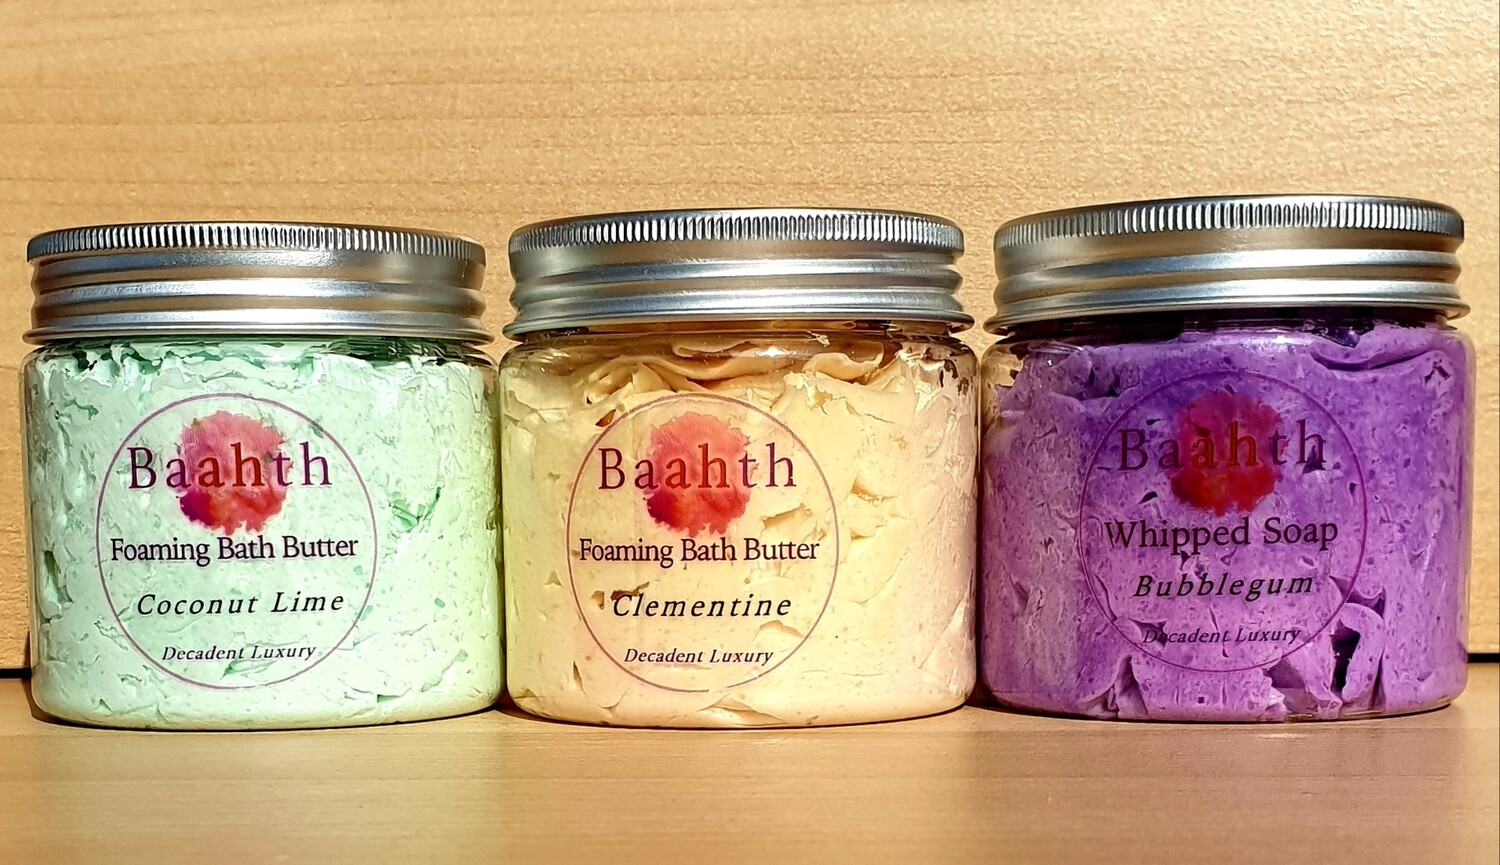 Foaming Bath Butter